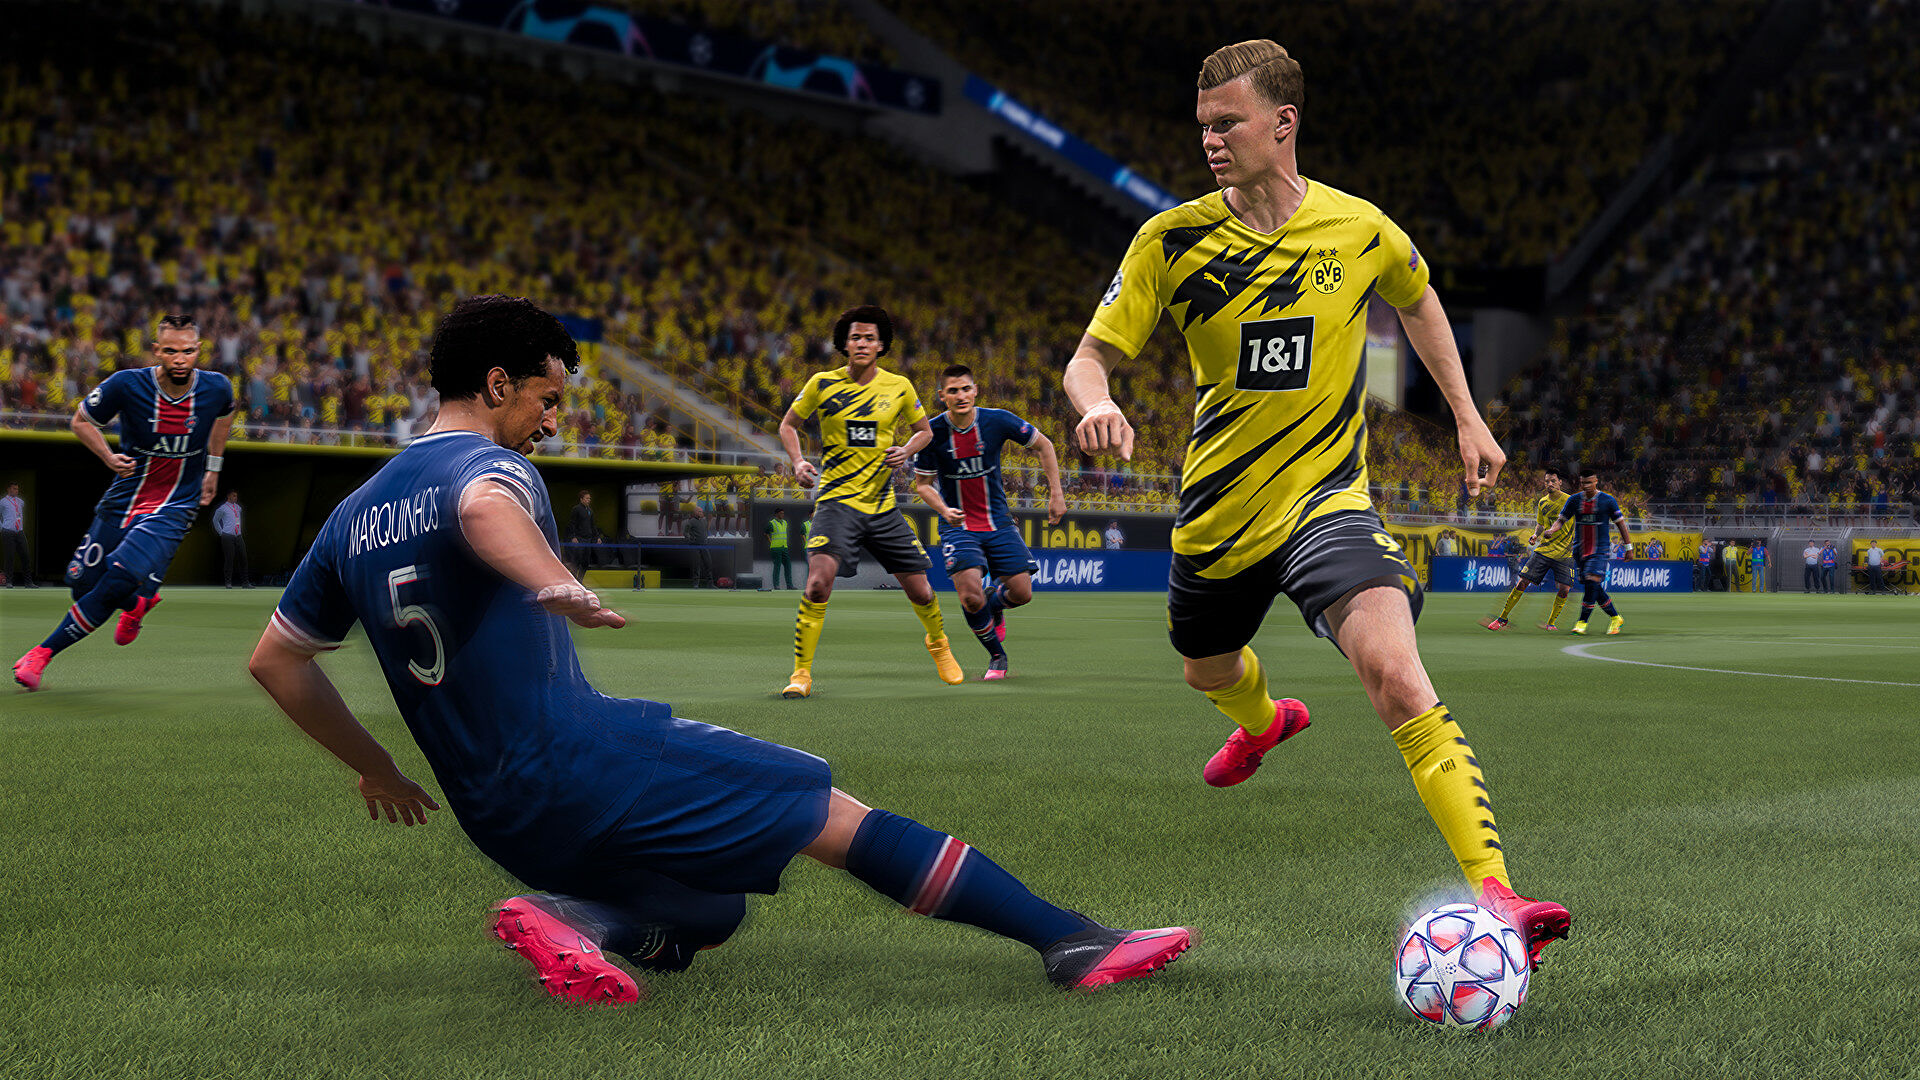 Lawsuit alleging FIFA 'dynamic difficulty' shenanigans has been dropped